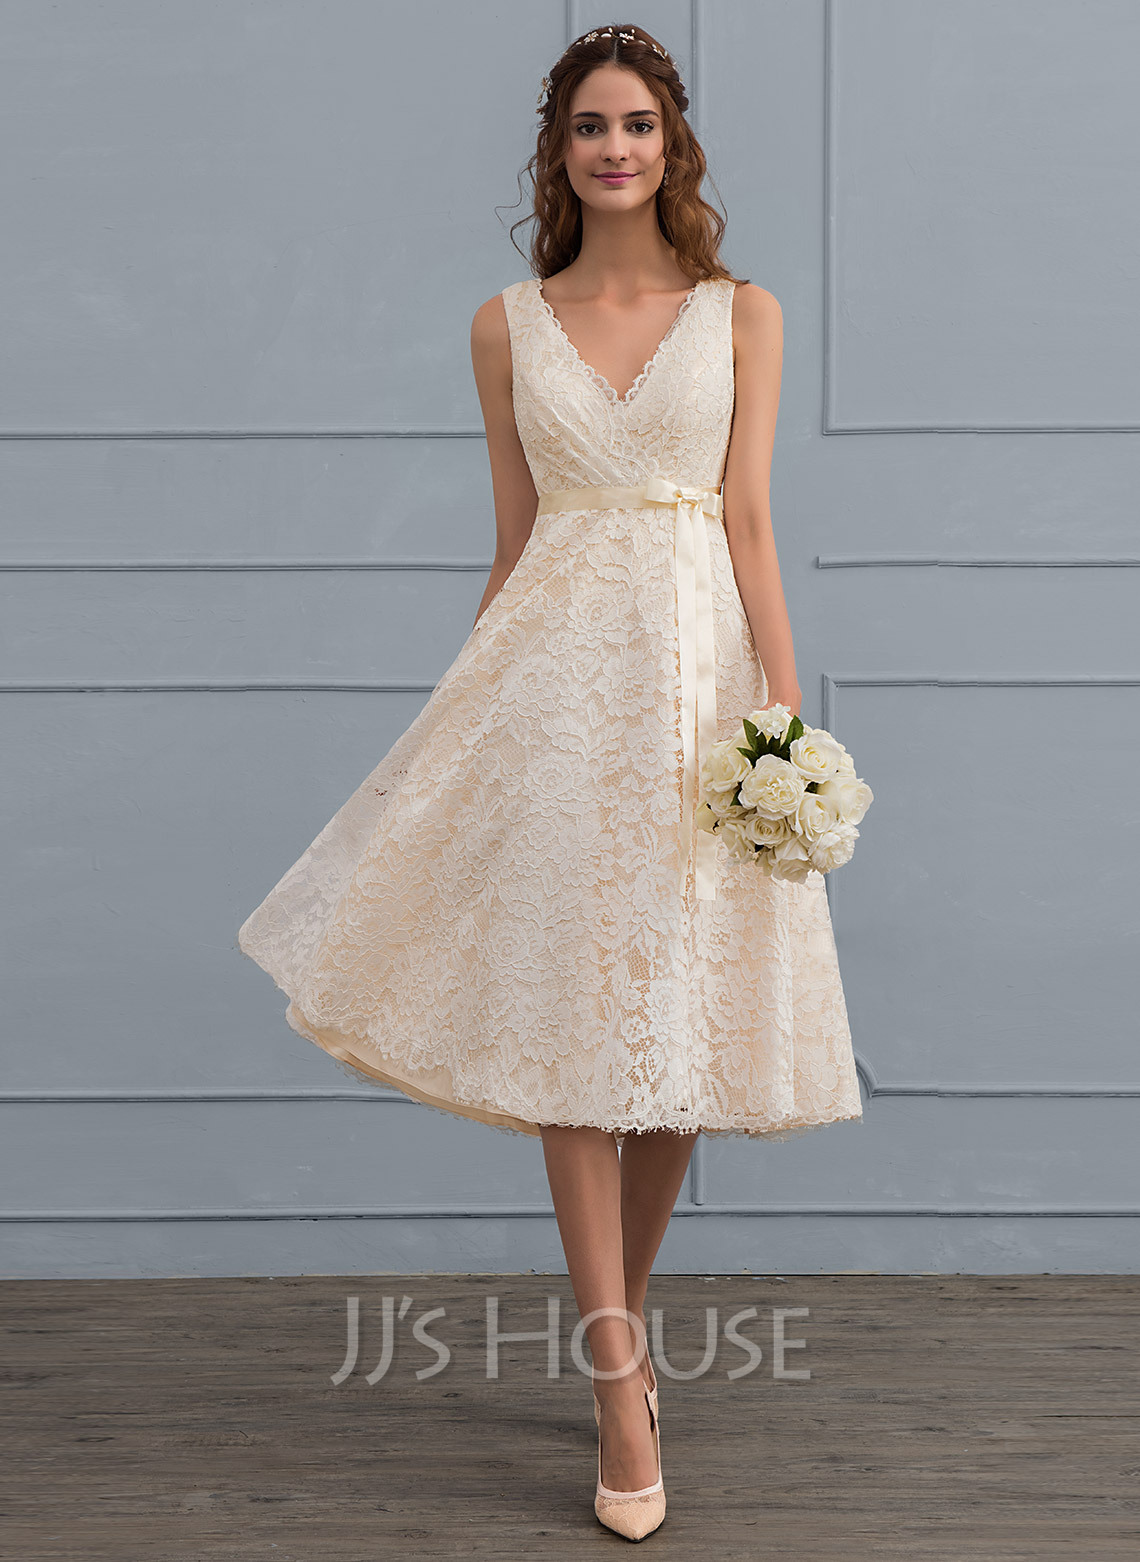 Beautiful Wedding Reception Dresses Jjshouse